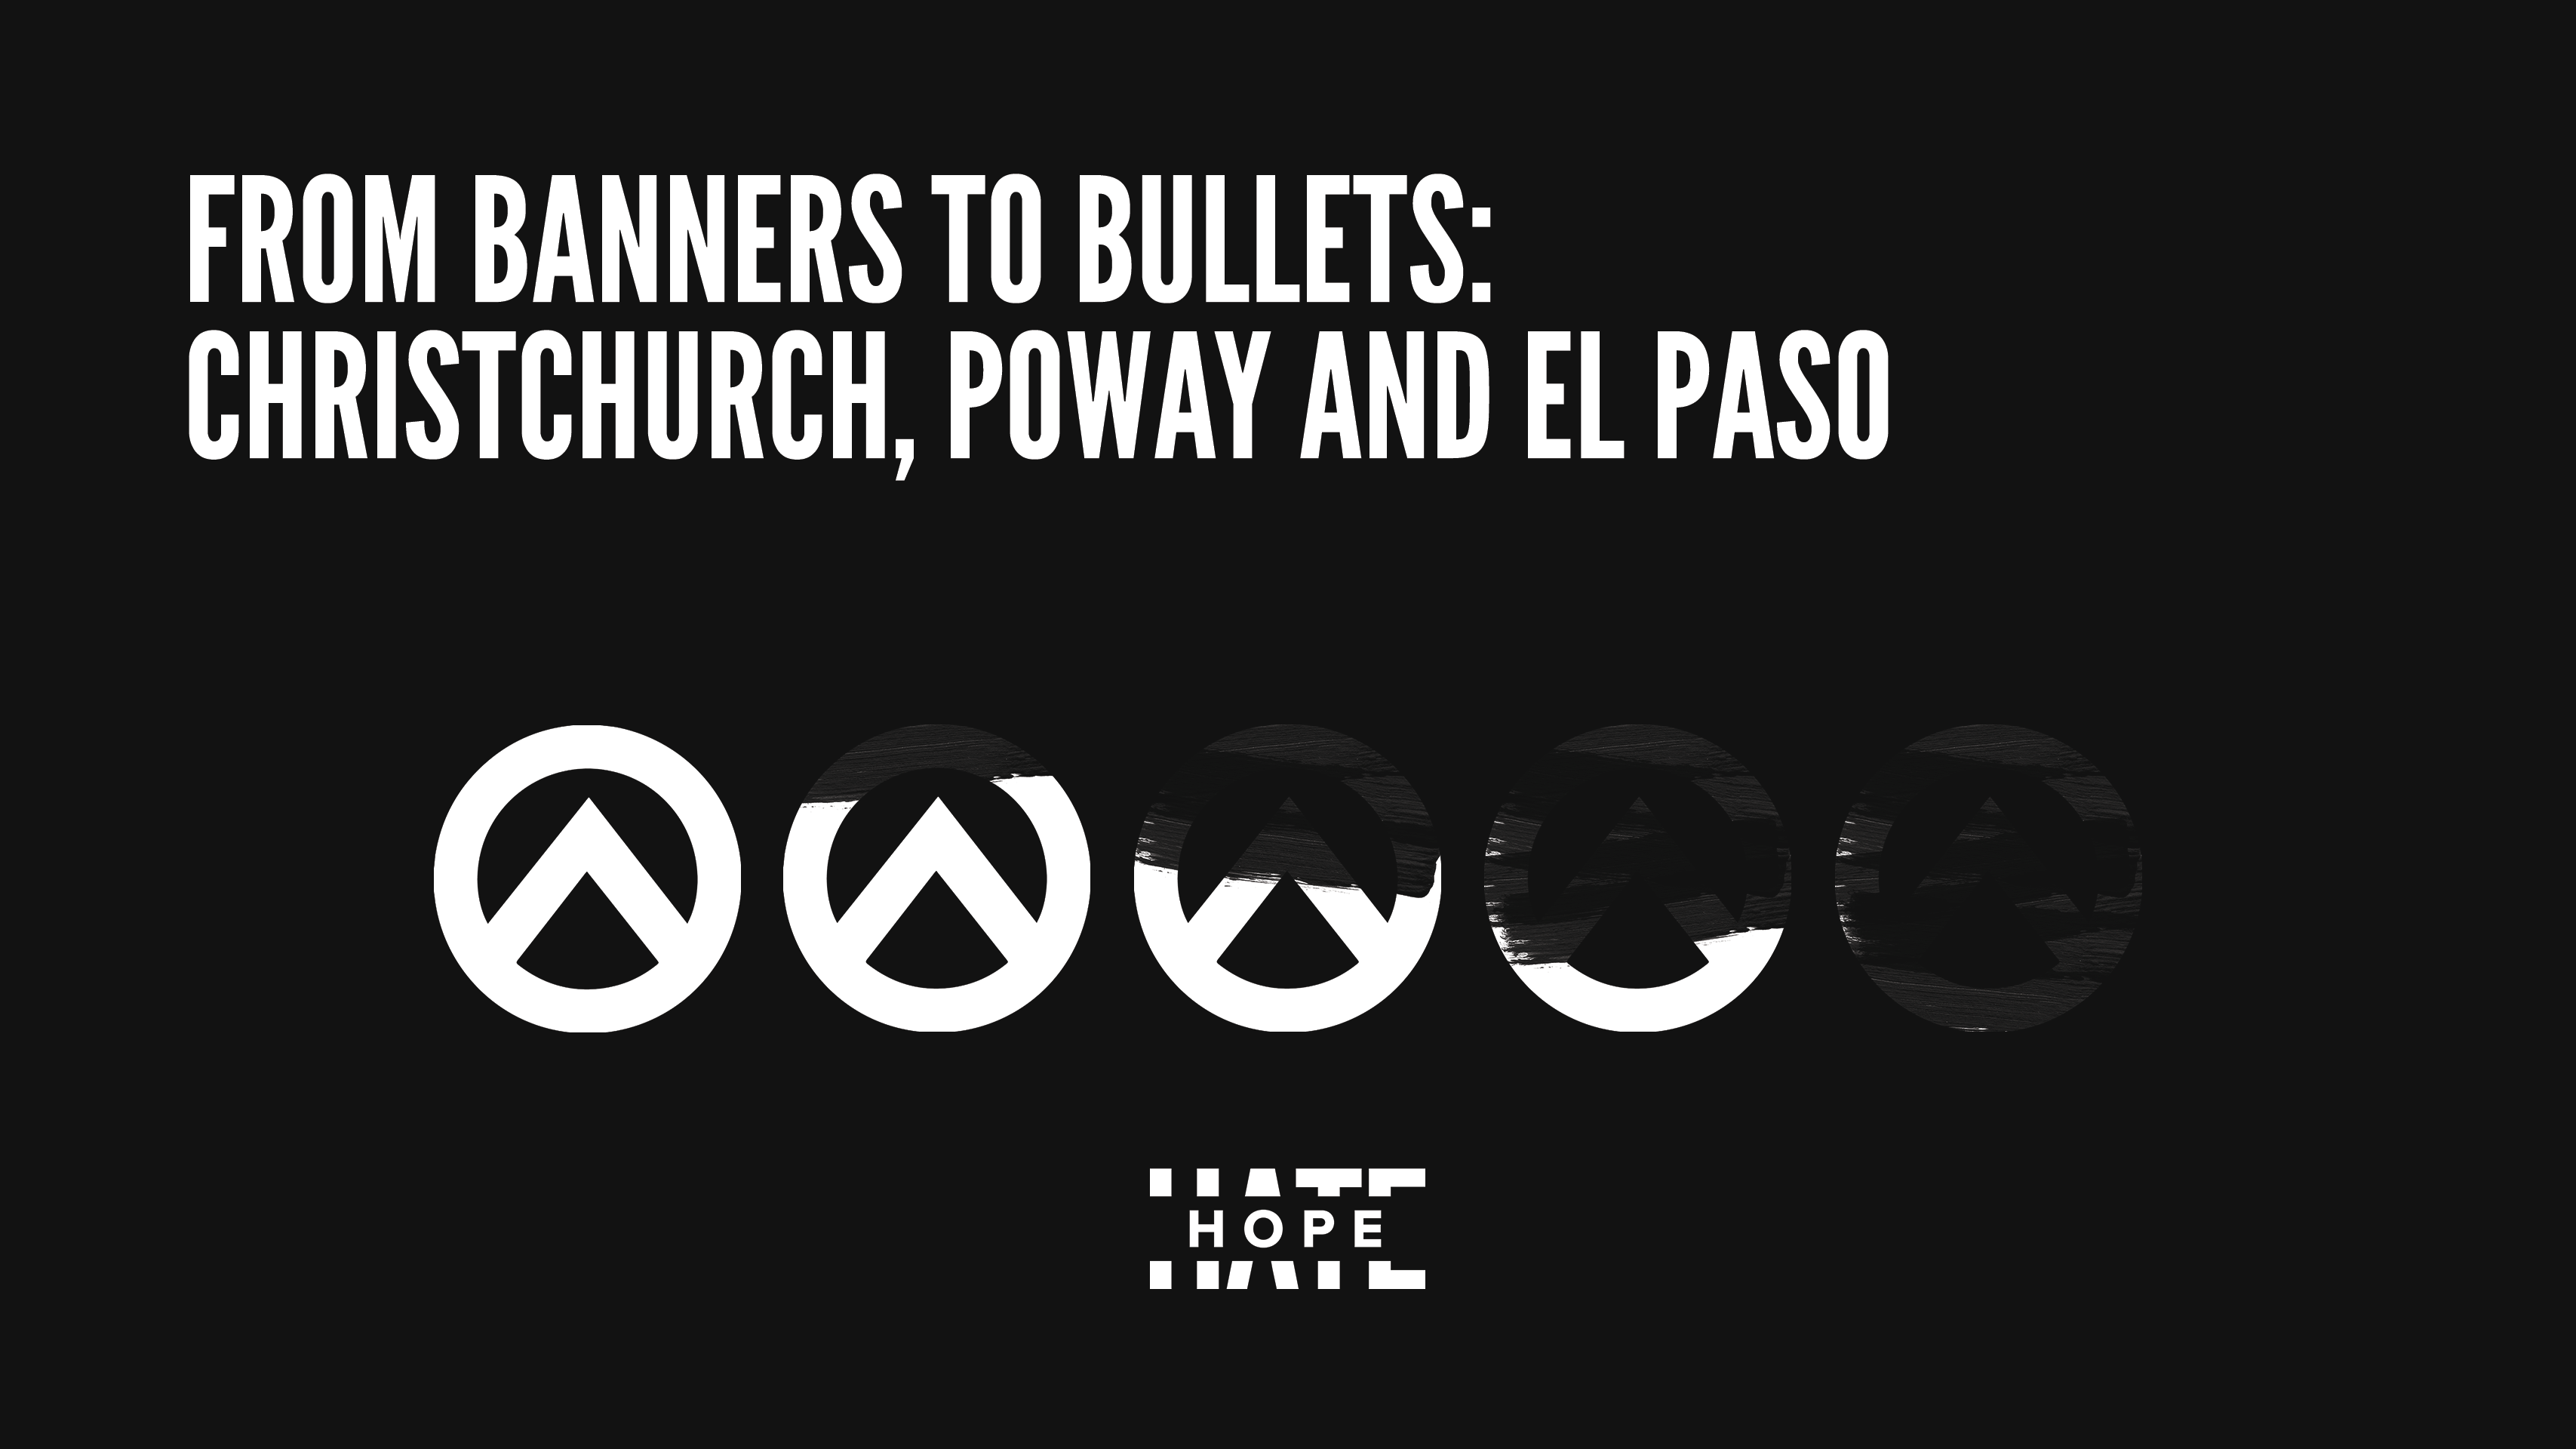 """A black graphic with white text which says """"`From Banners to bullets: Christchurch, Poway and El Paso"""""""